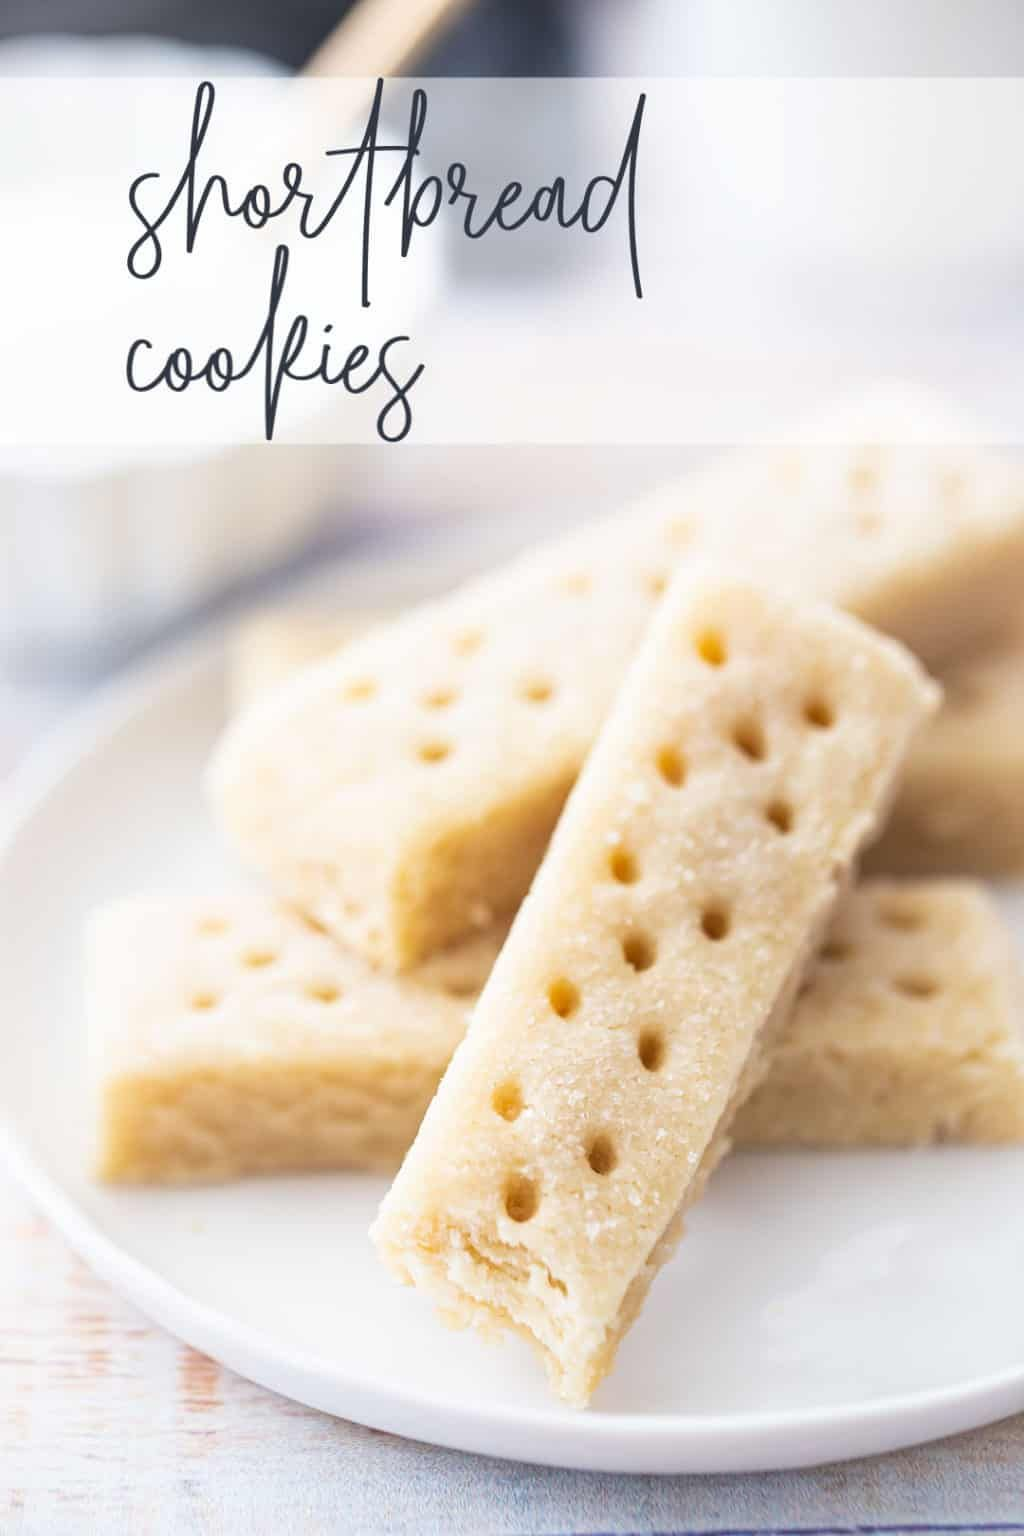 Classic Shortbread Cookies: These are so buttery and tender they practically melt in your mouth! And easy to make too, with just 5 simple ingredients. #shortbread #cookies #christmas #buttery #easy #scottish #meltinyourmouth #recipe #best #classic #glutenfree #soft #holiday #cutout #vanilla #traditional #rolled #oldfashioned #stamped #simple #sliceandbake #lemon #almond #pecan #withjam #lavender ##rosemary #brownsugar #pistachio #earlgrey #coffee #dipped #orange #cinnamon #ginger #walnut #lime #